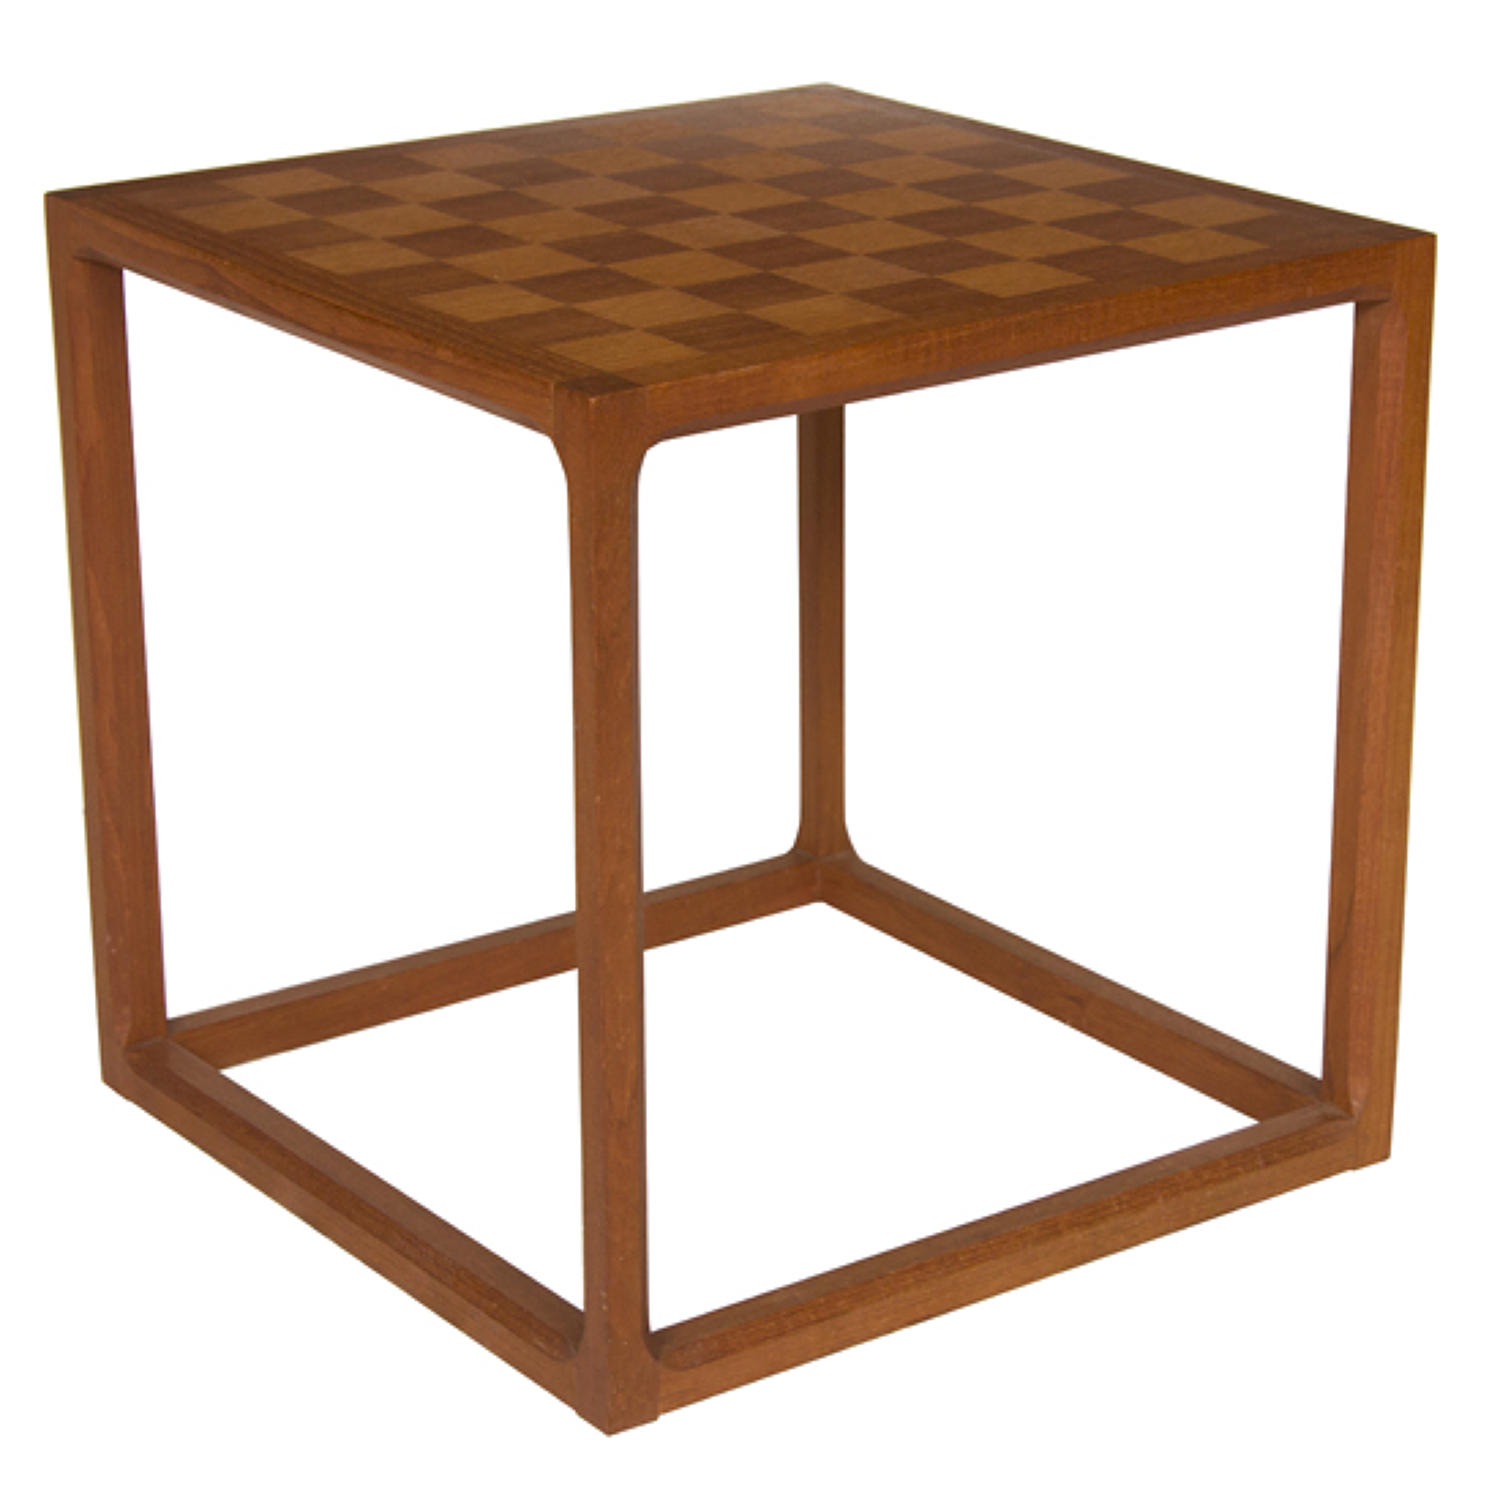 1960's Teak Chess Table